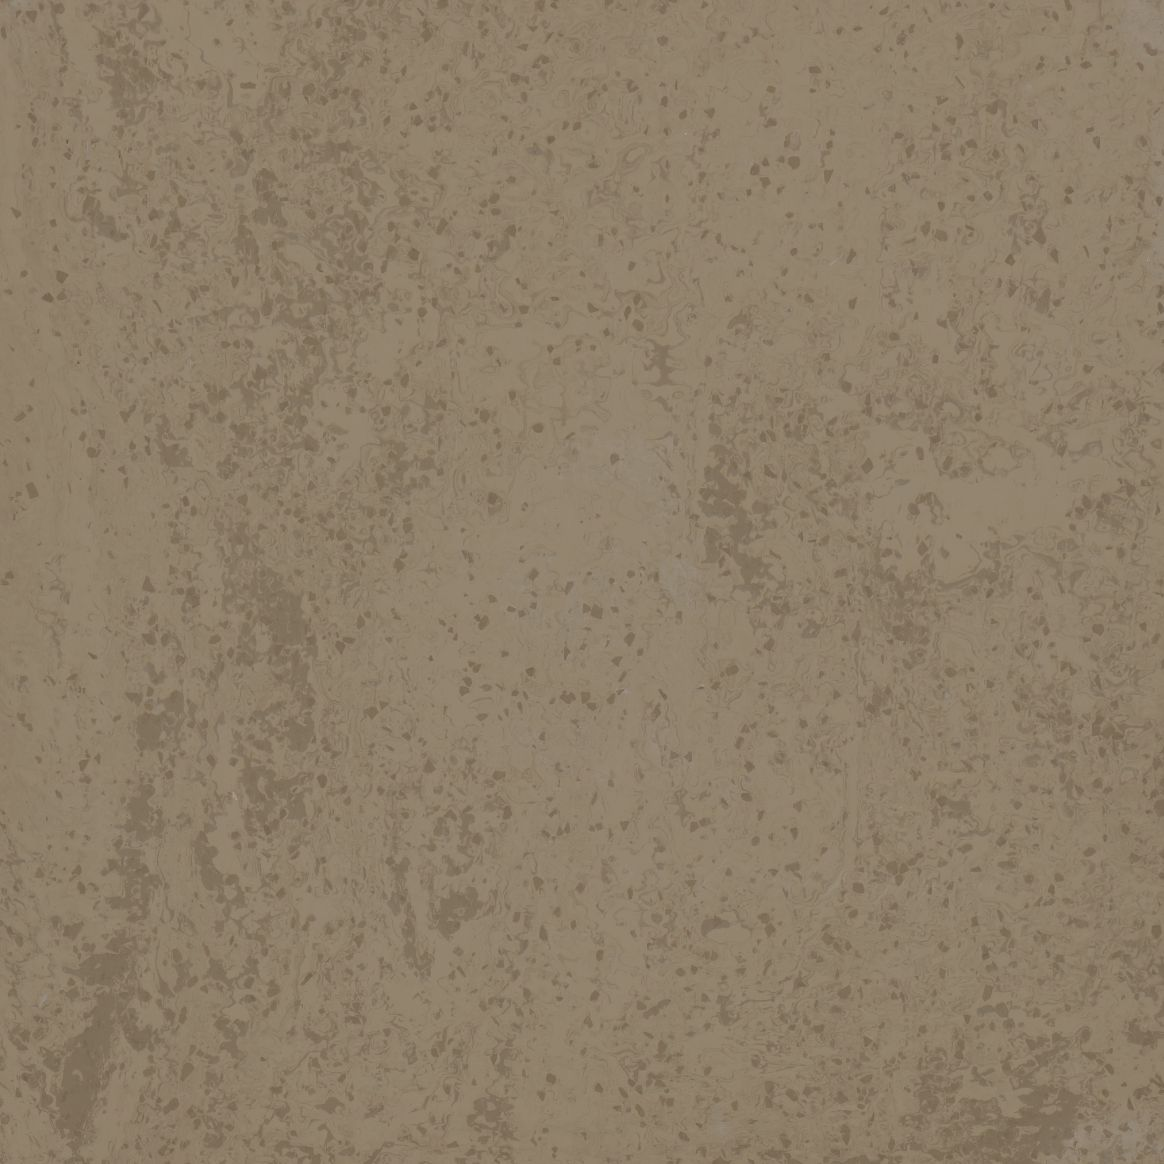 Mannington Teles Tile 35 x 35 Cliffside